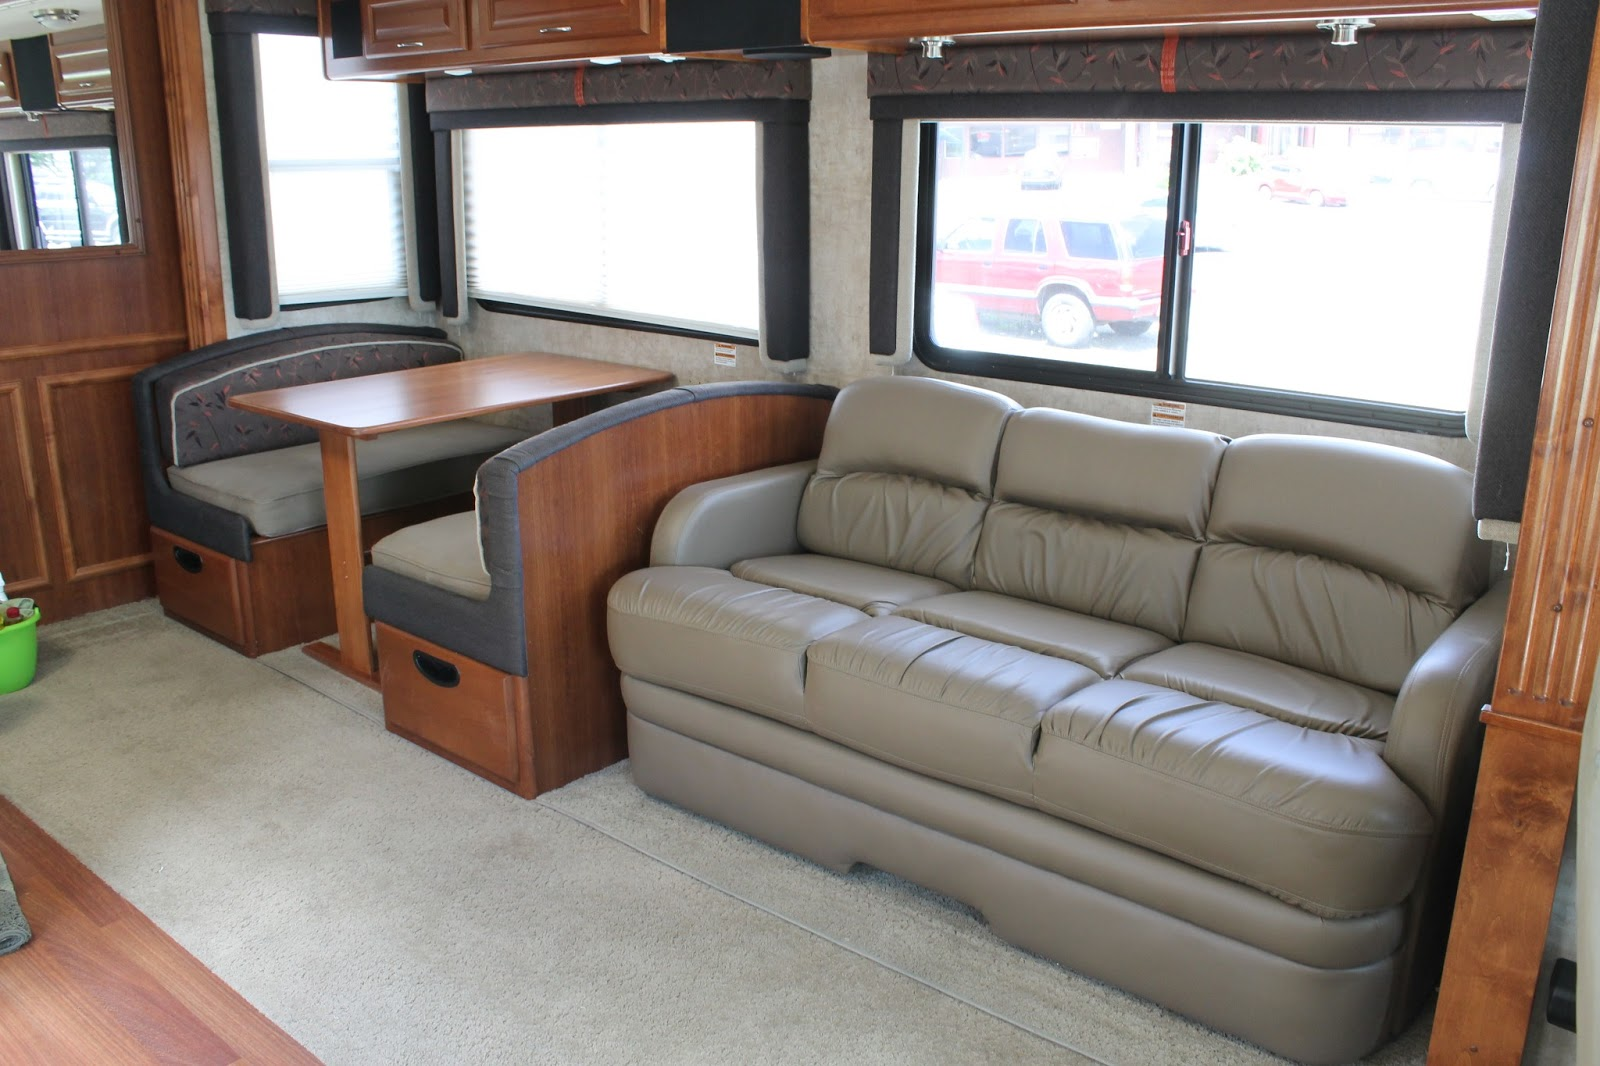 Countryside Interiors Transforming Rvs And Trailers Since The 80 S Recent Upgrades Best